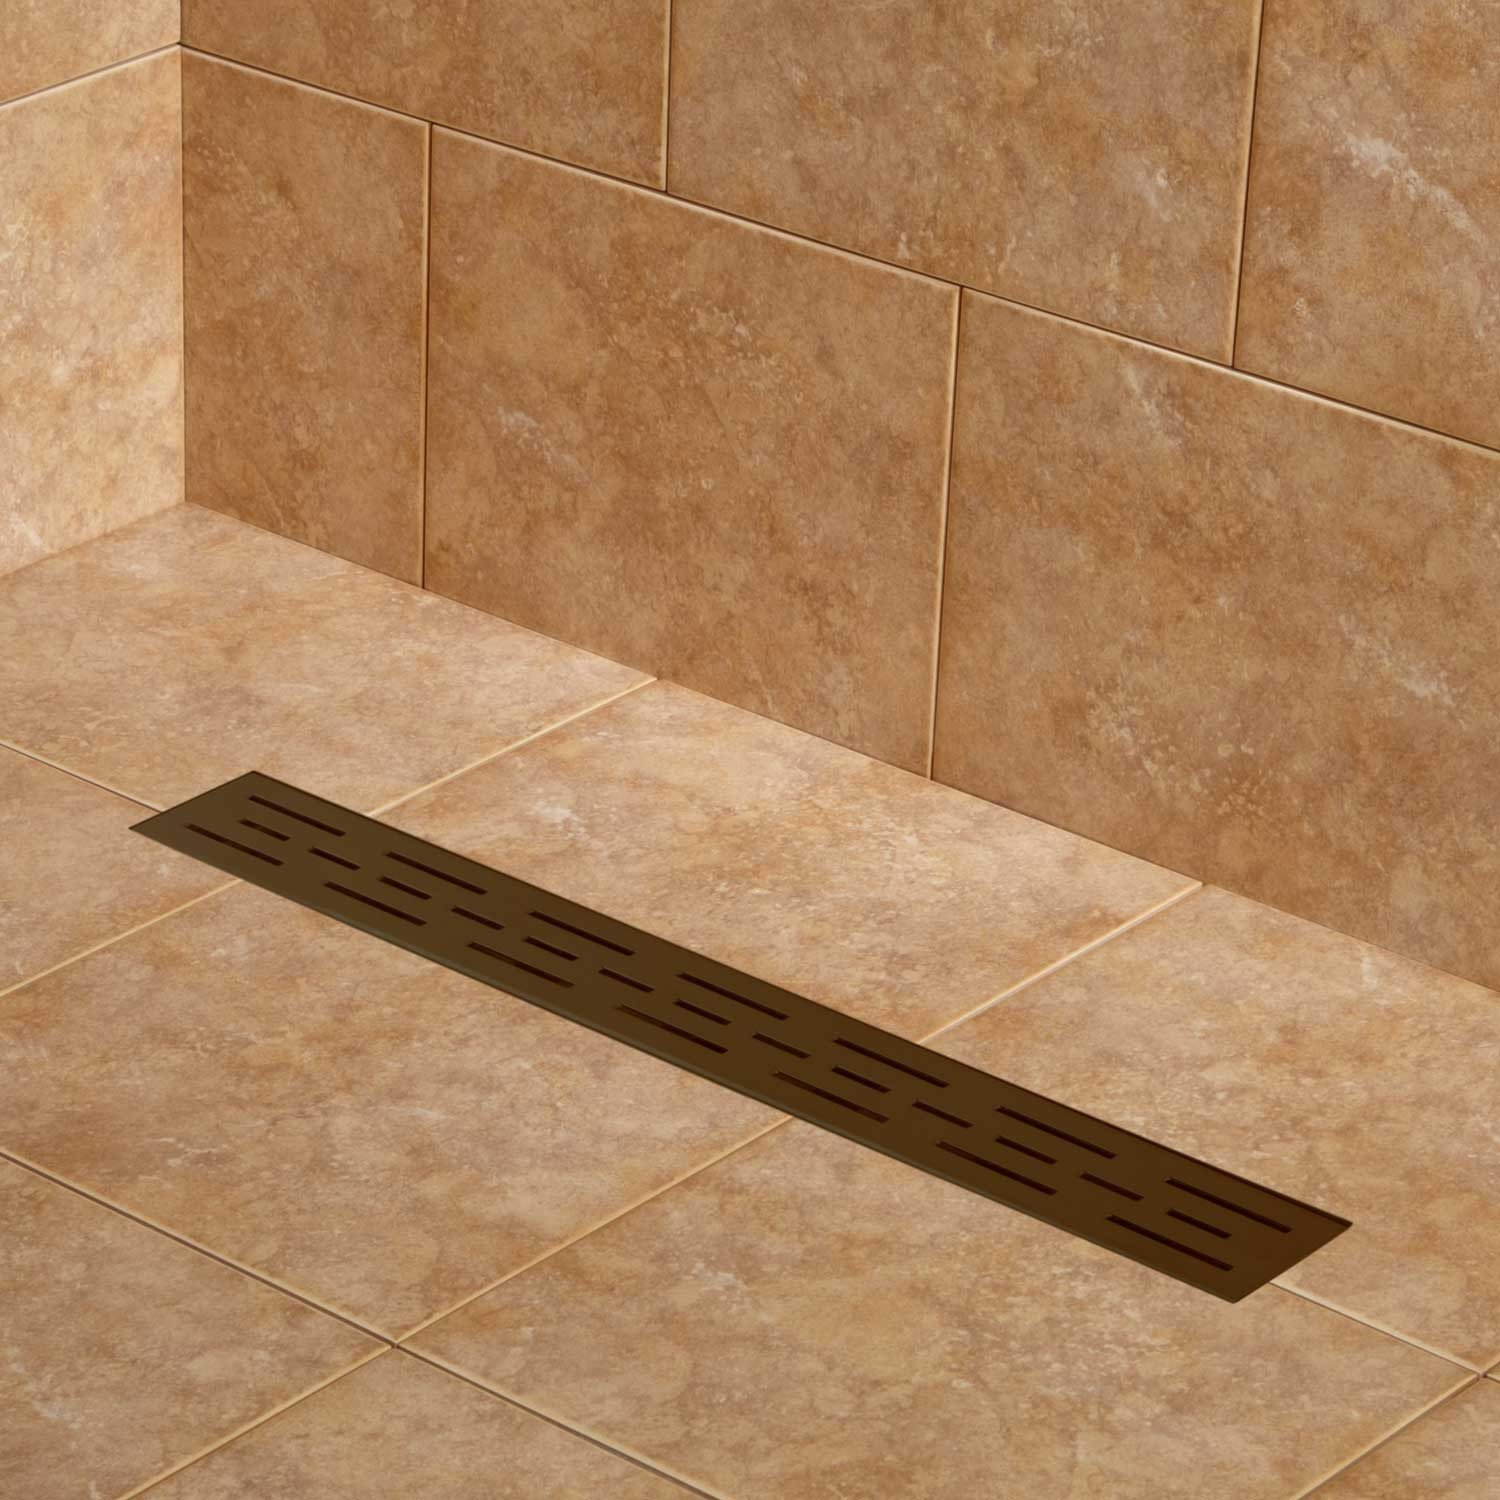 Naiture 32'' Stainless Steel Linear Shower Floor Drain Without Drain Flange In Oil Rubbed Bronze Finish